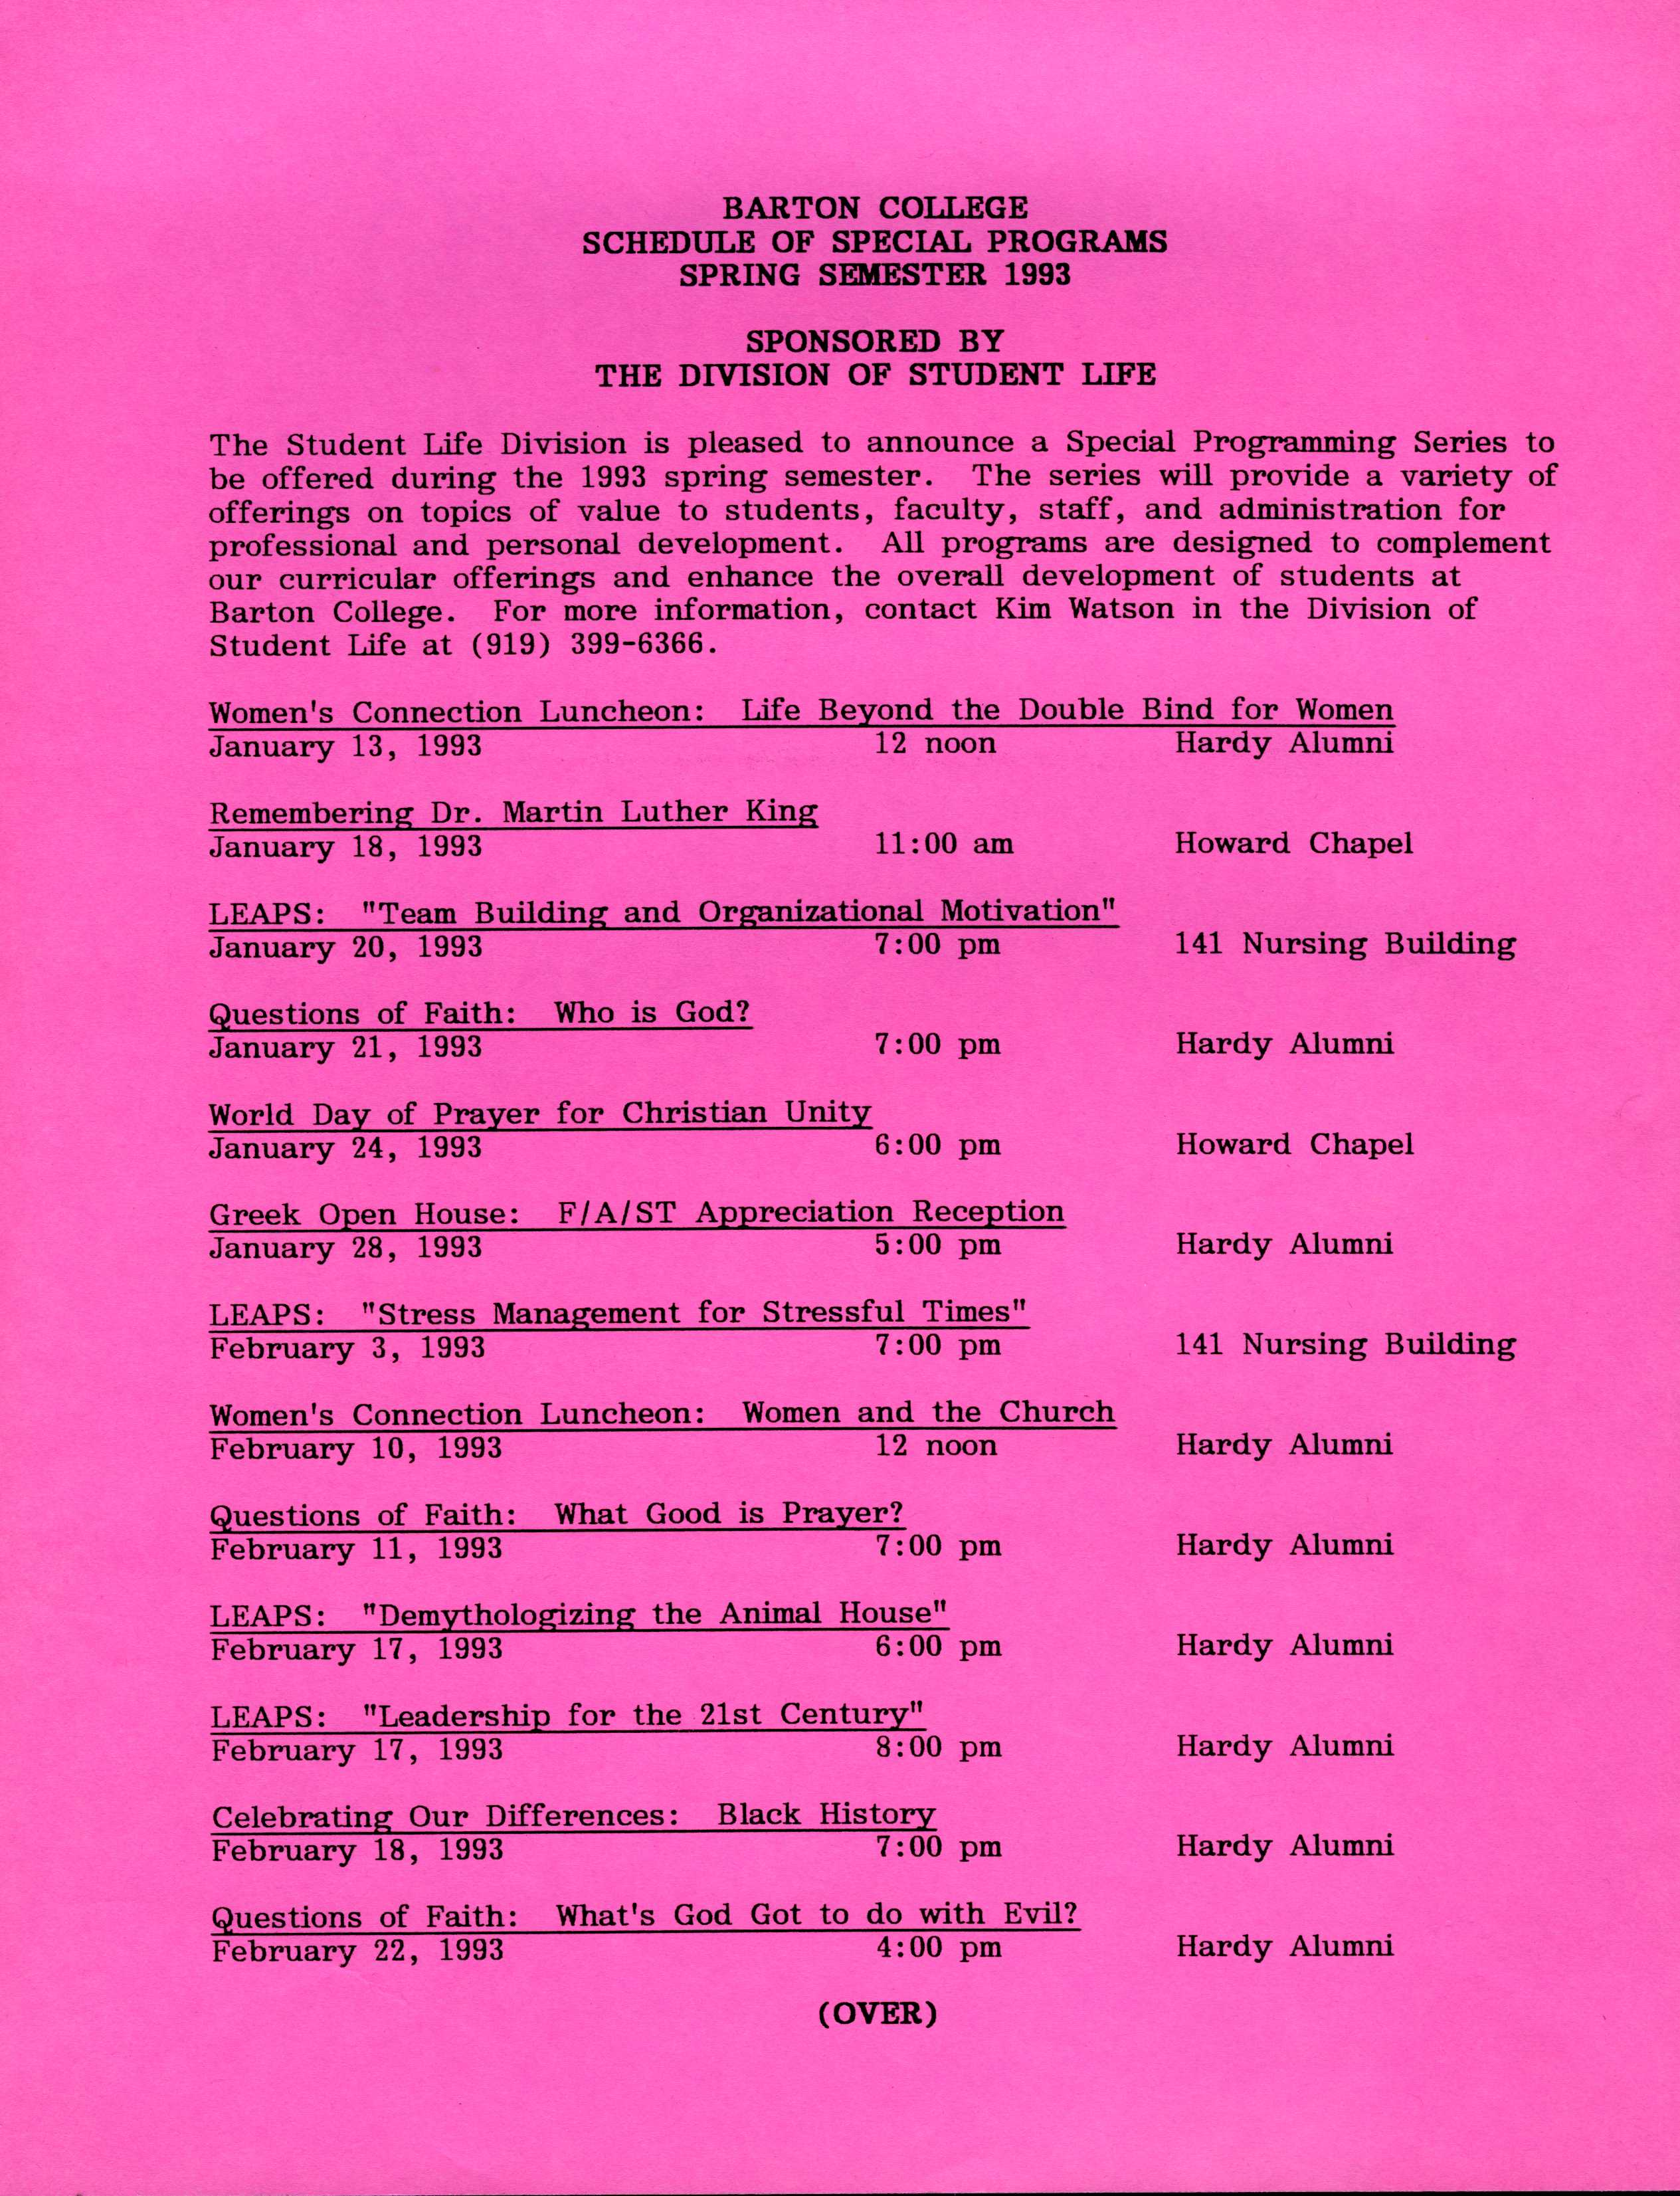 Barton College Schedule of Special Programs, 1993